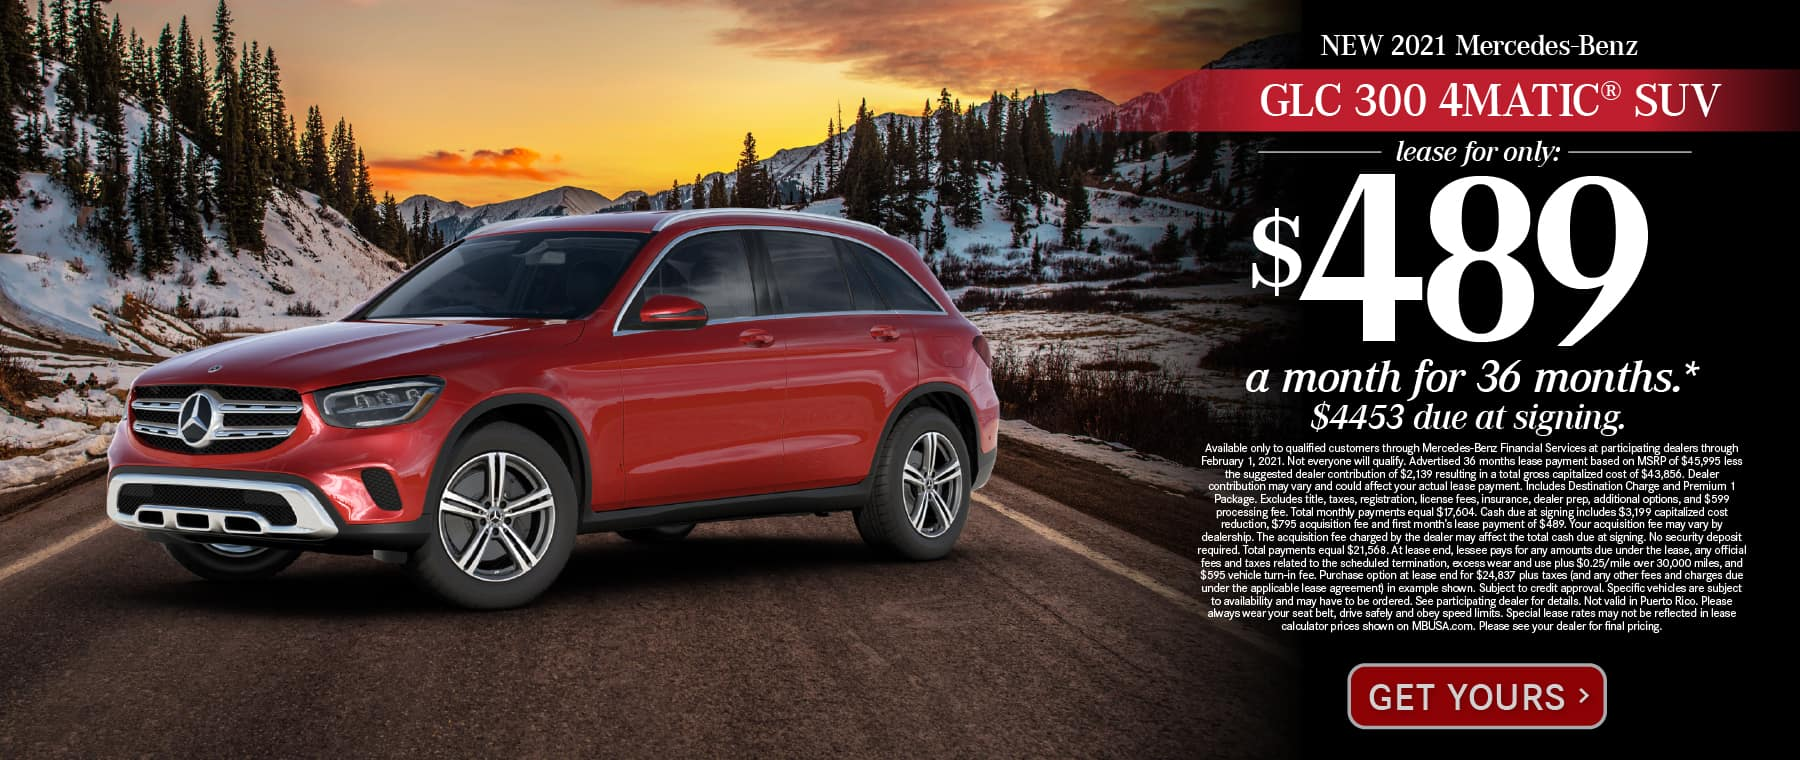 New 2021 Mercedes-Benz GLC 300 4MATIC® Lease for only: $489 a month for 36 months. $4453 due at signing. Get Yours.